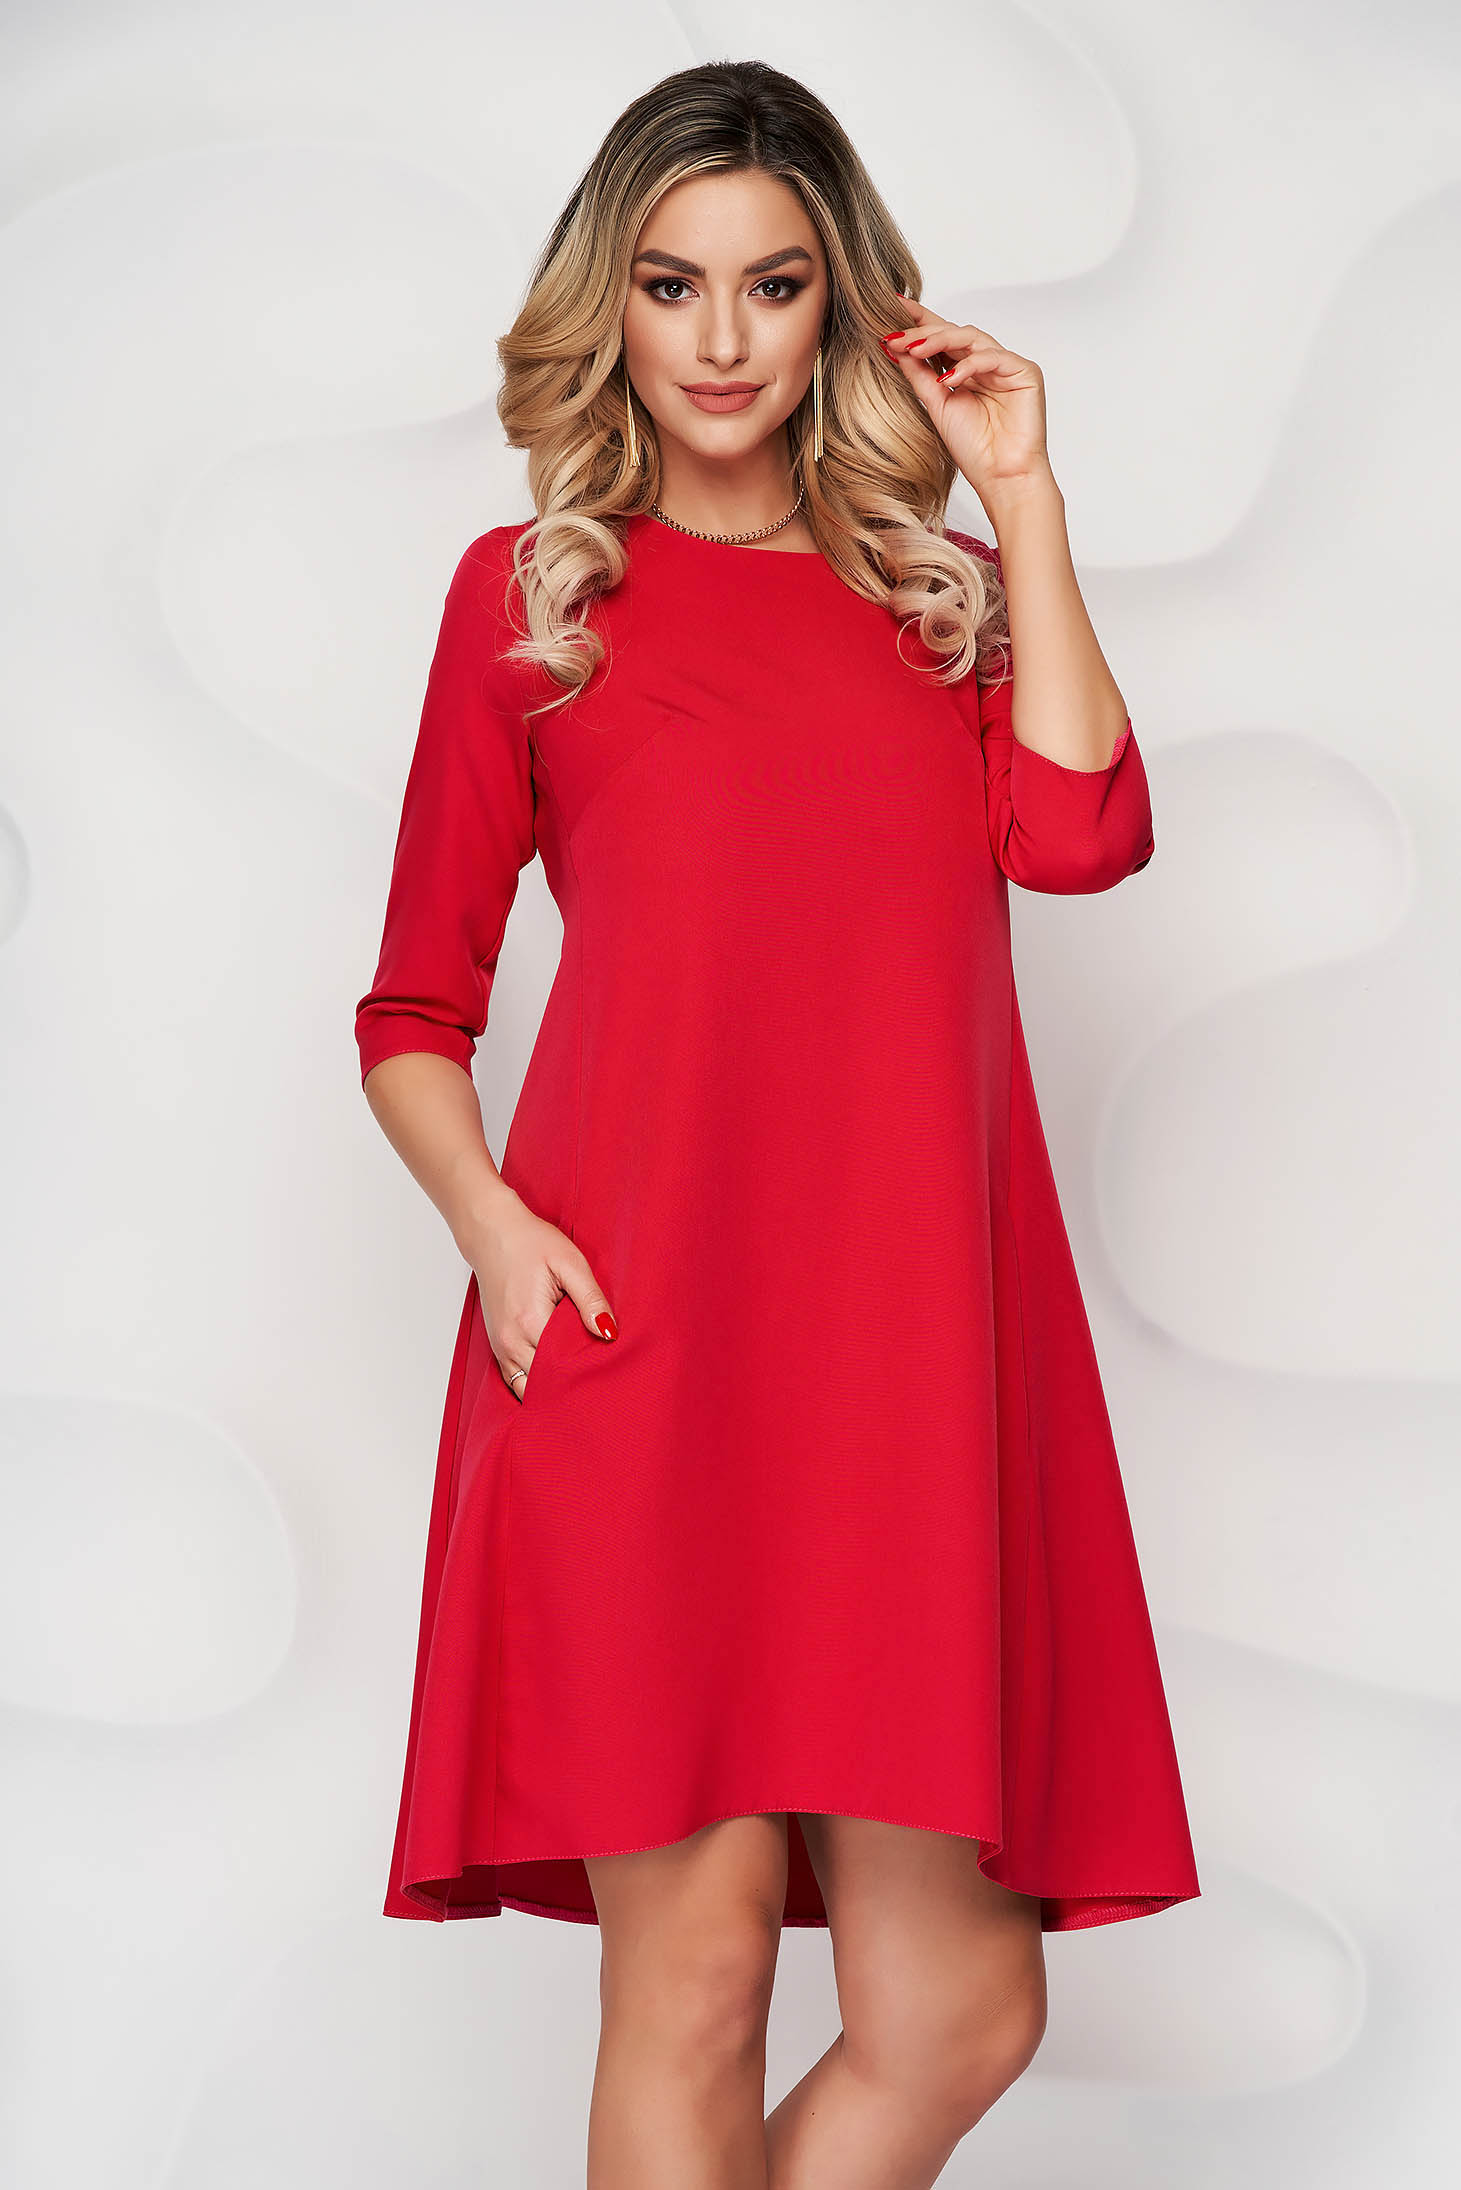 Dress red office a-line cloth slightly elastic fabric with rounded cleavage